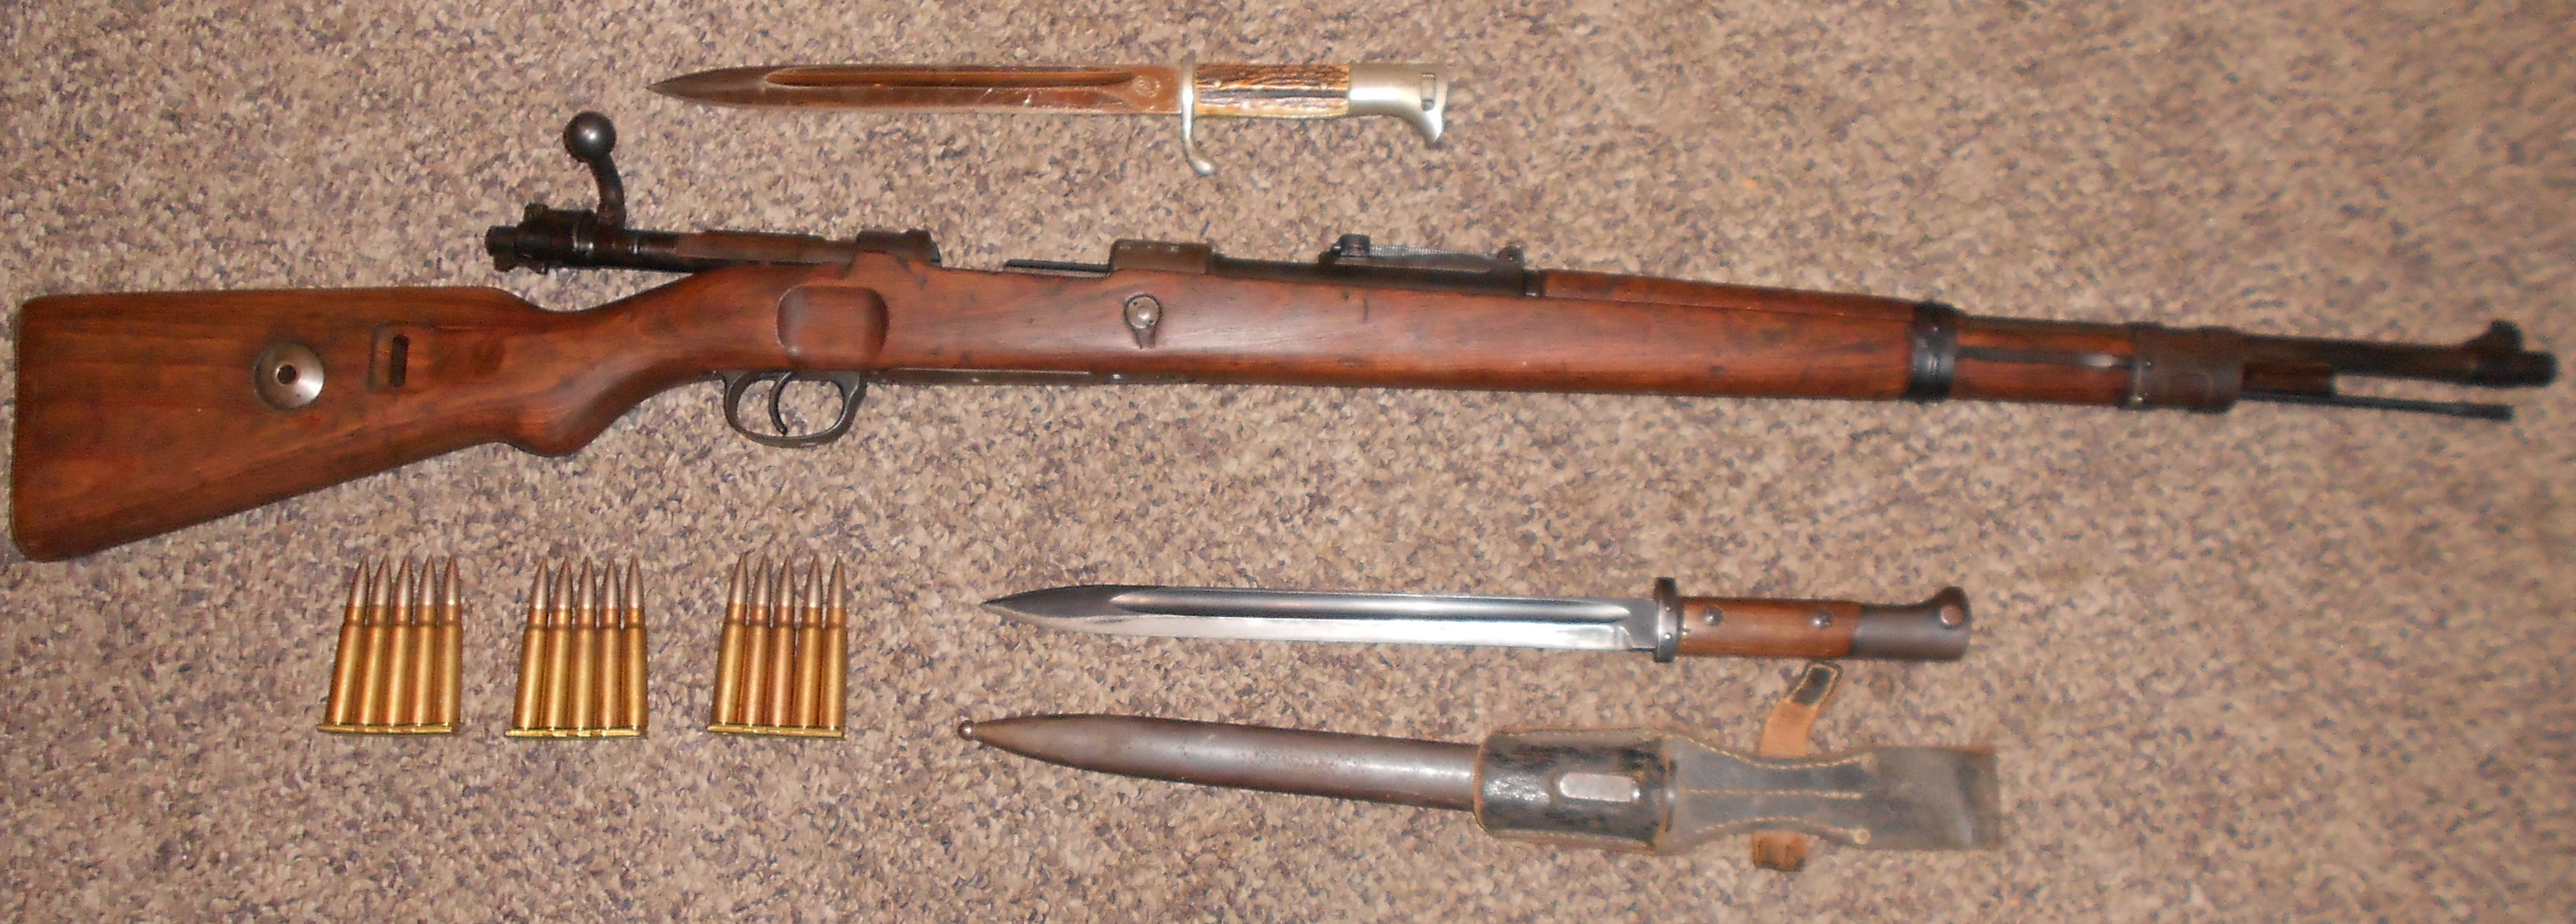 Images of Mauser Rifle | 4041x1450